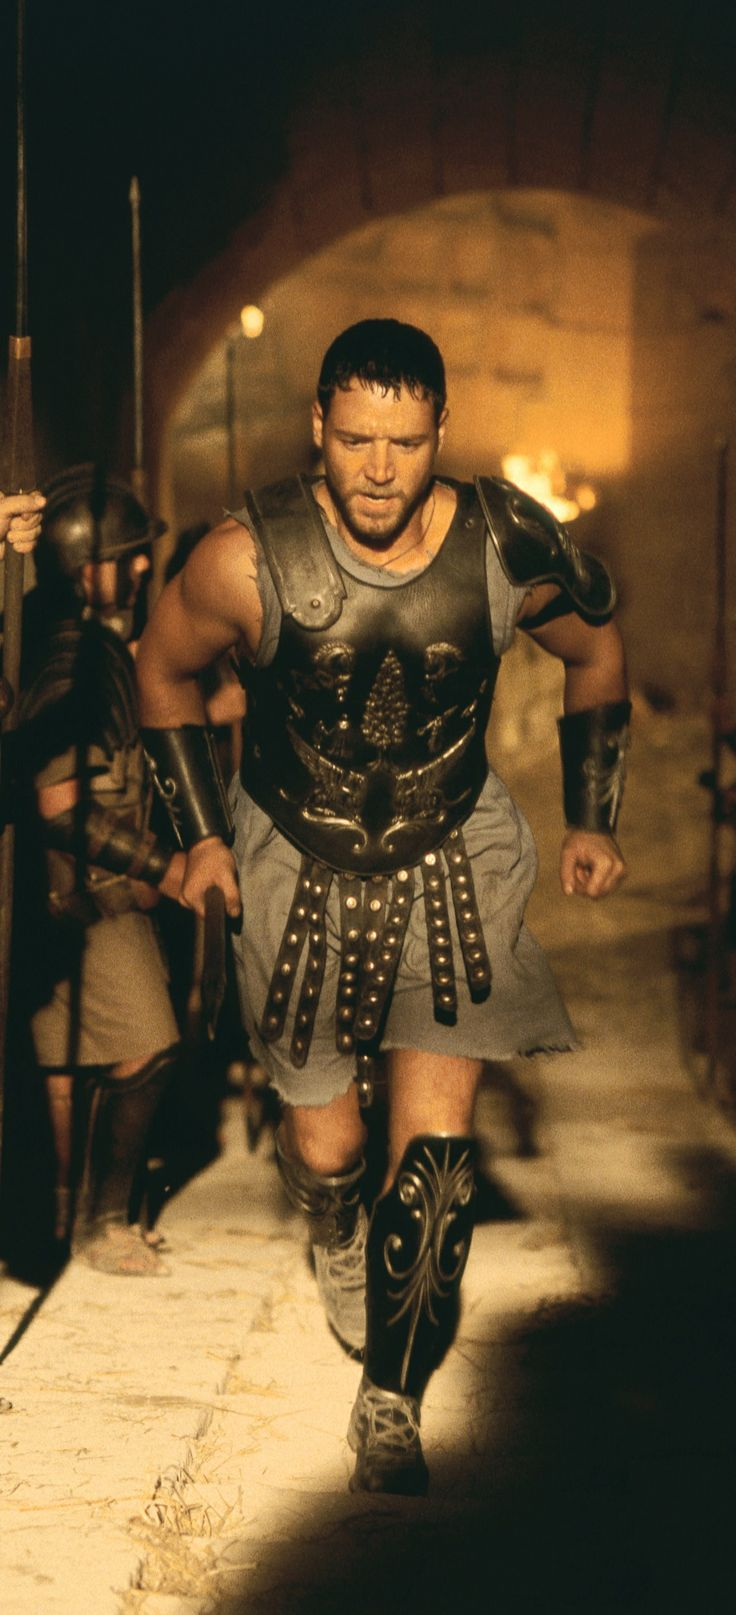 Russell Crowe in Gladiator